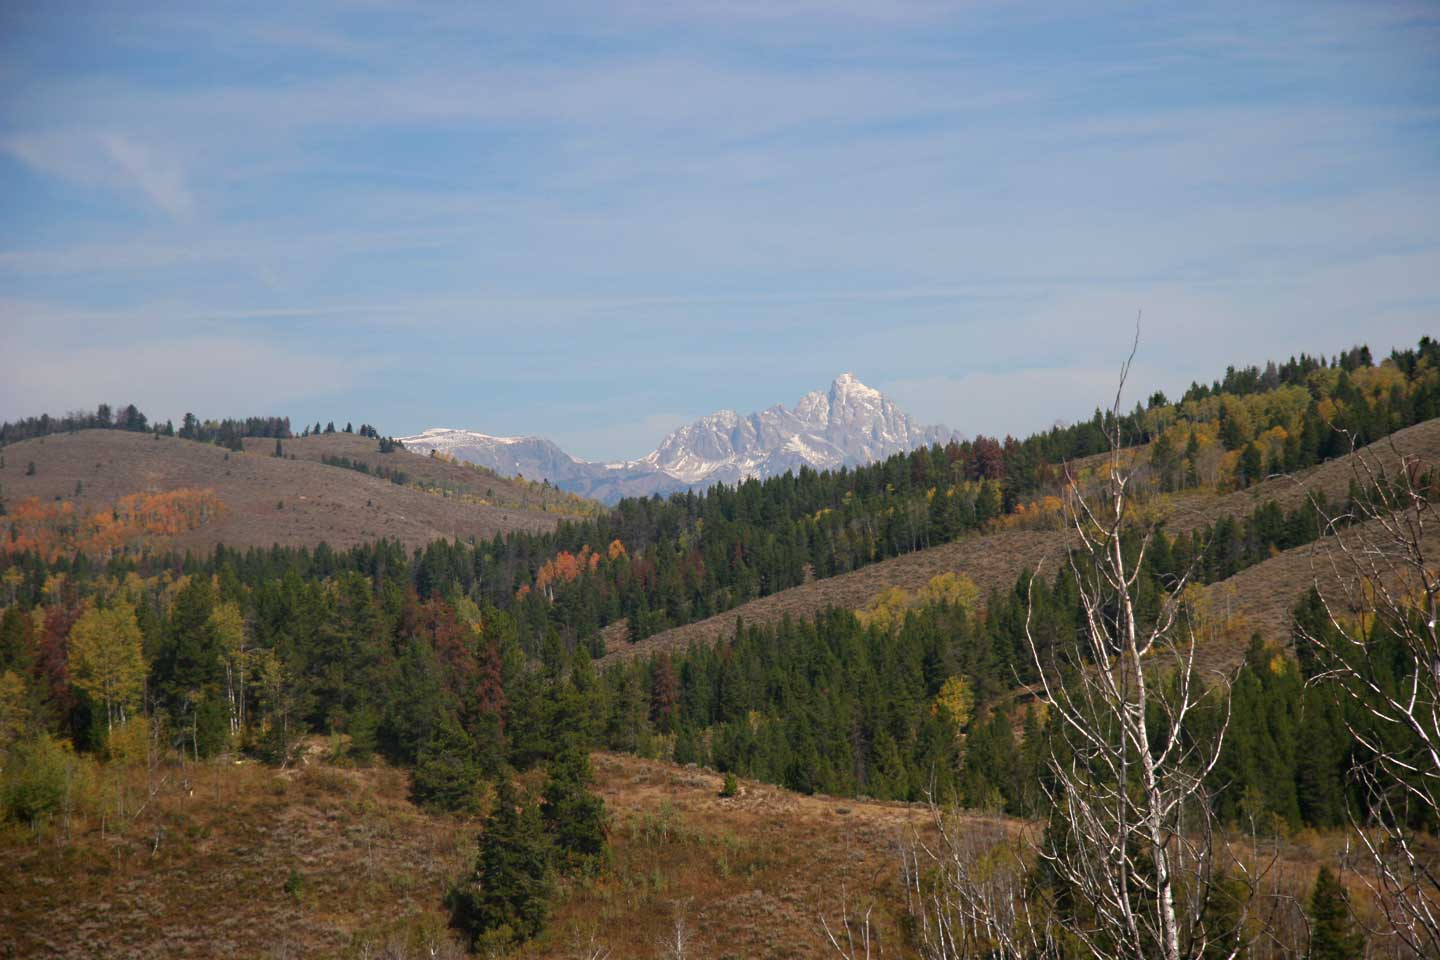 View of the Teton Range from a site